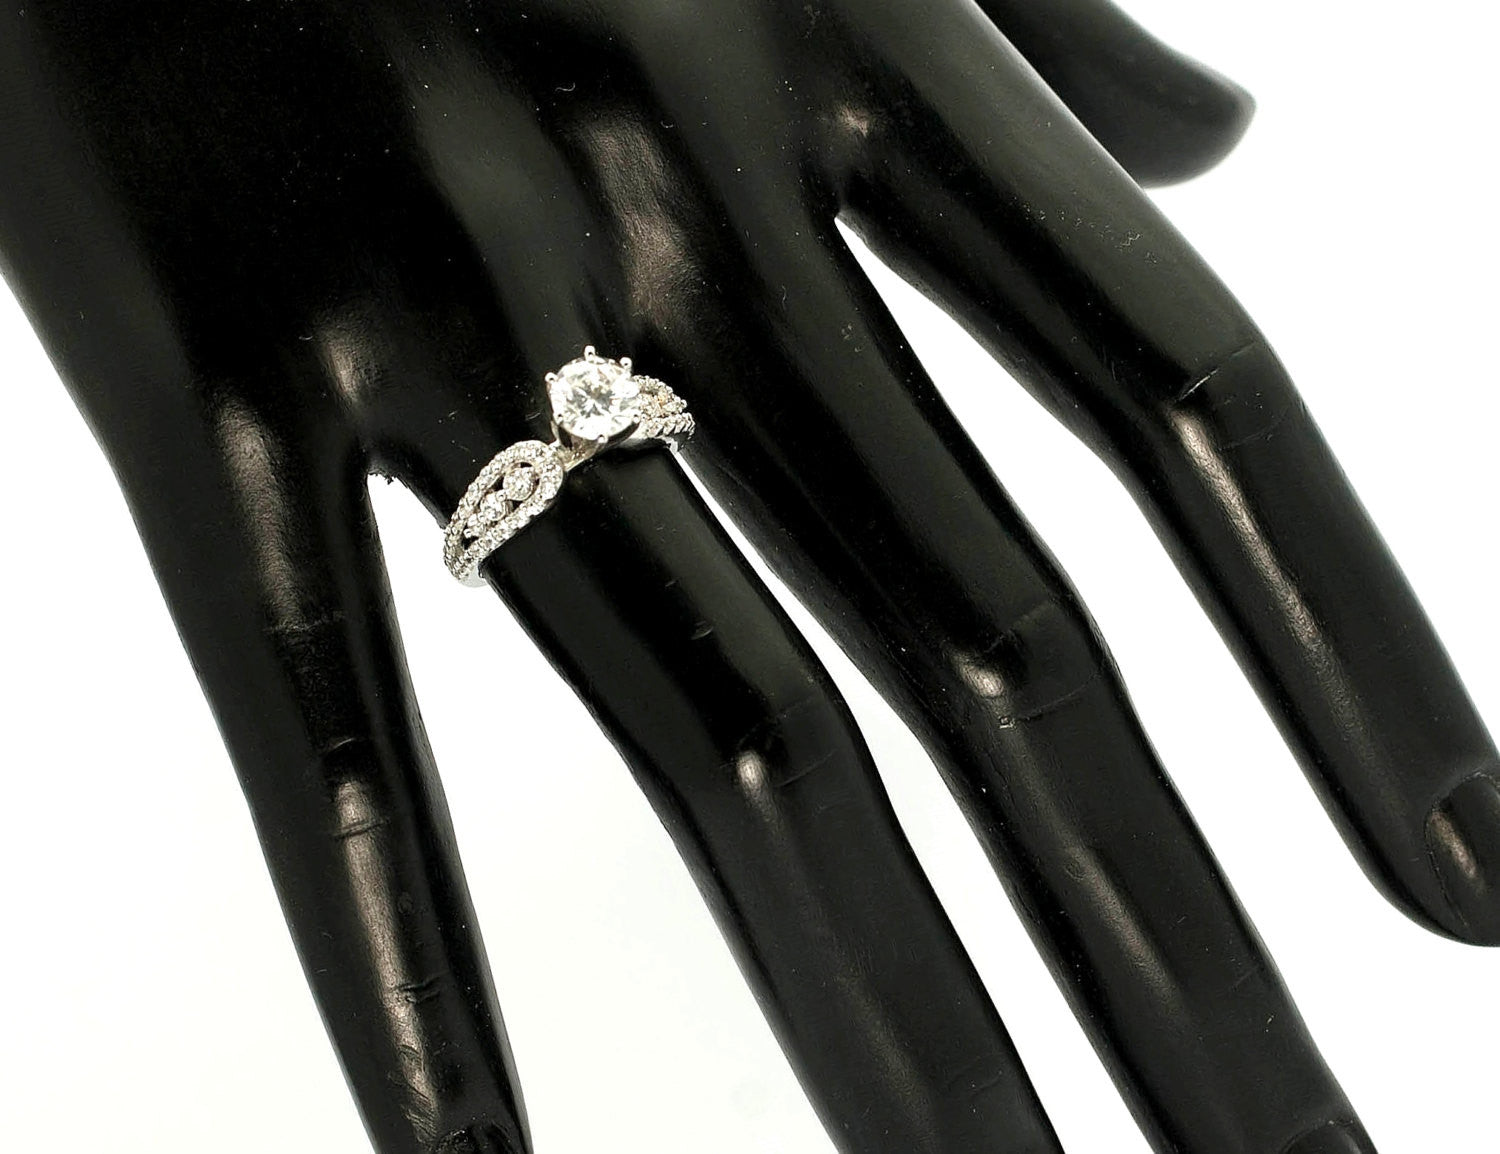 Moissanite Engagement Ring, Unique Shank With .73 Carat Diamond & 1 Carat Forever Brilliant Moissanite Center Stone, Anniversary Ring - FBY11650